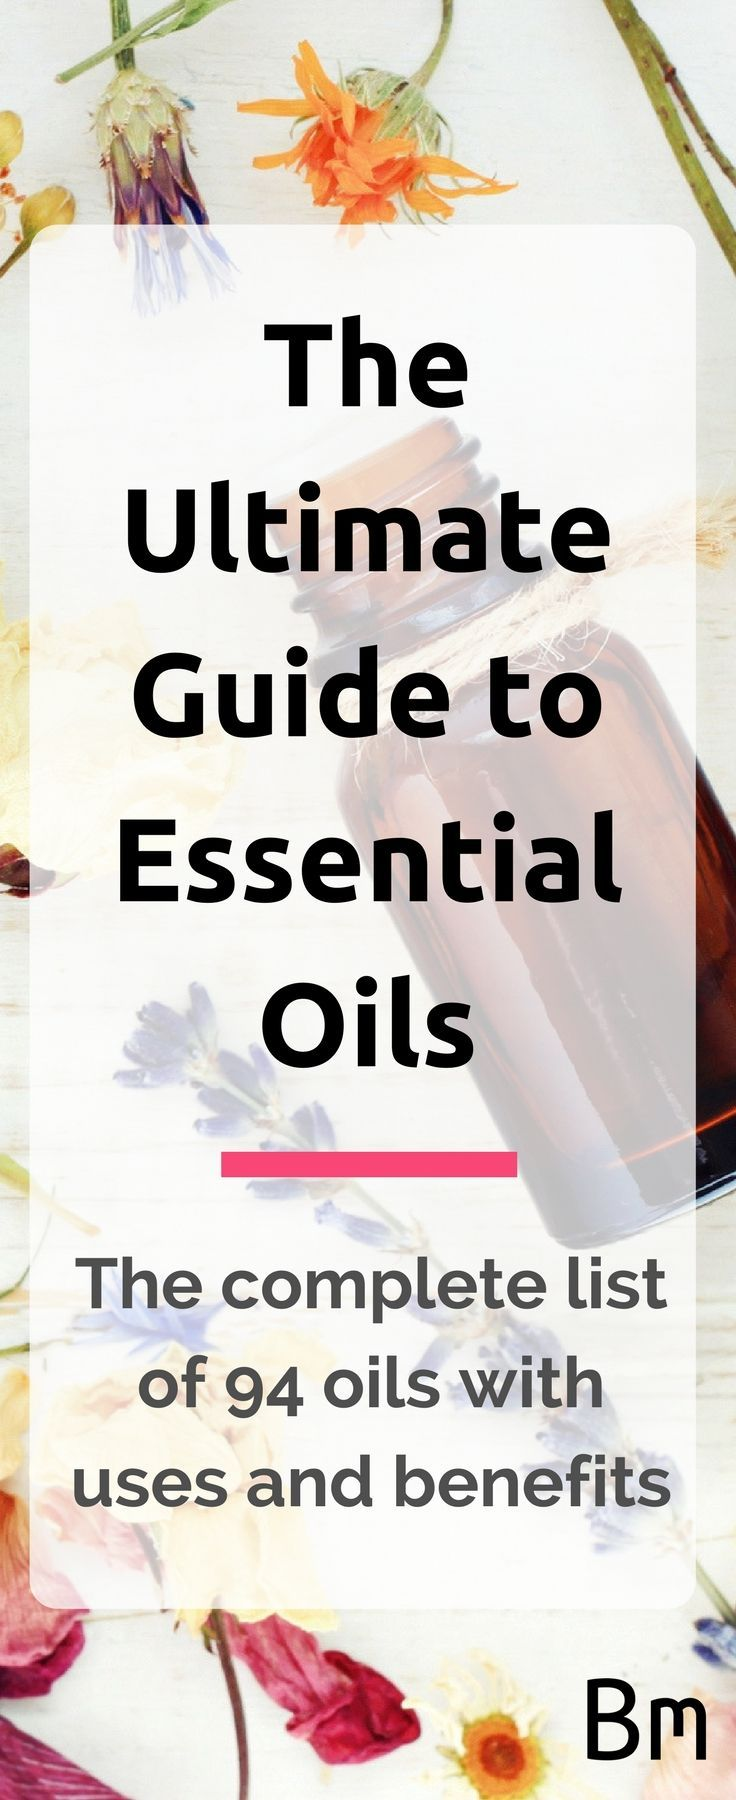 Learn about the benefits of over 94 essential oils and how to use them for clearer skin, longer hair, better sleep, aromatherapy and more. Learn more at: https://www.baremetics.com/essential-oils #essentialoils